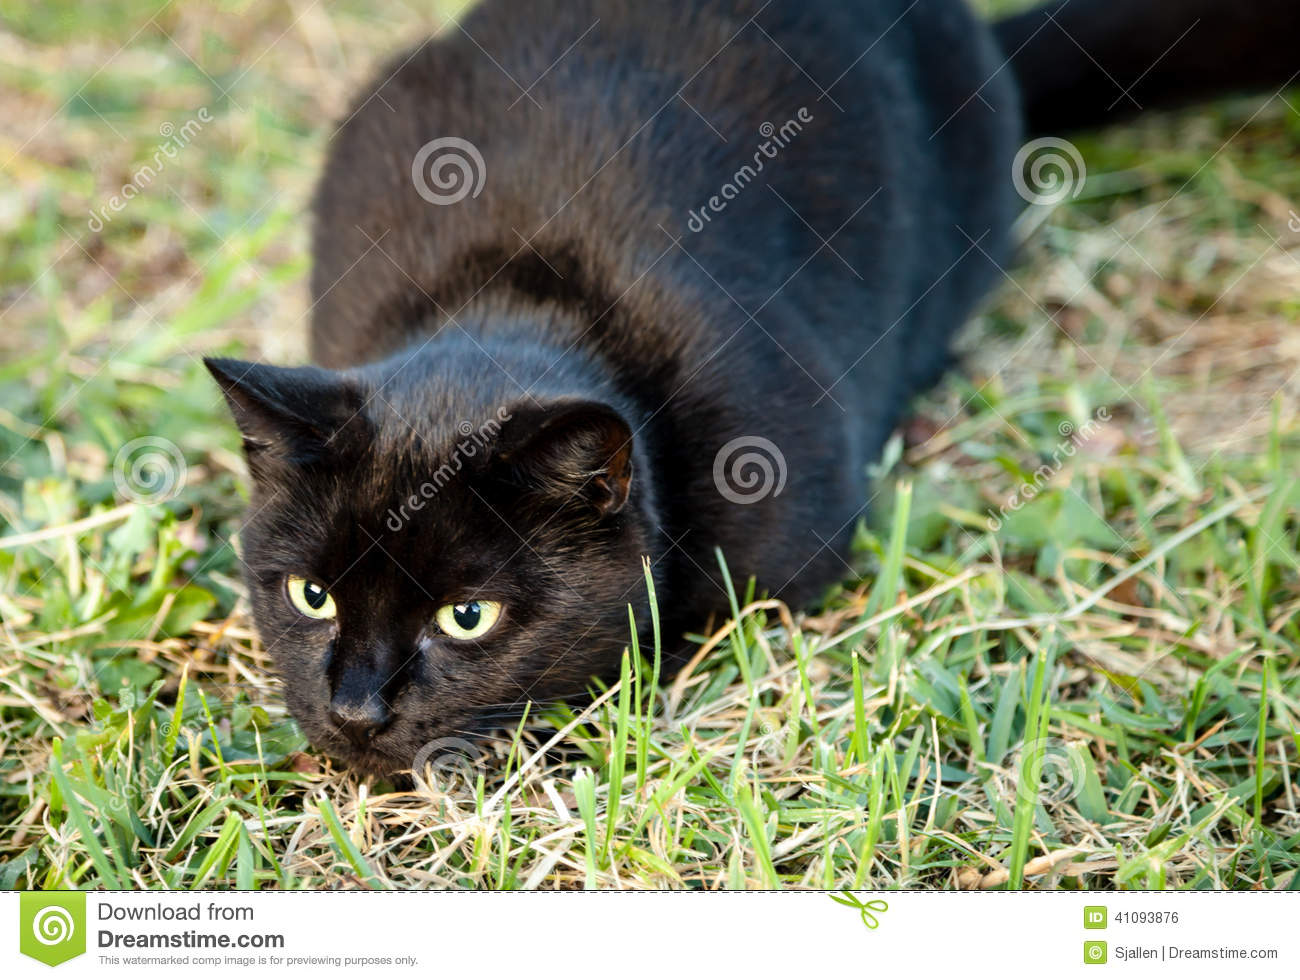 Cats Eyes When Hunting